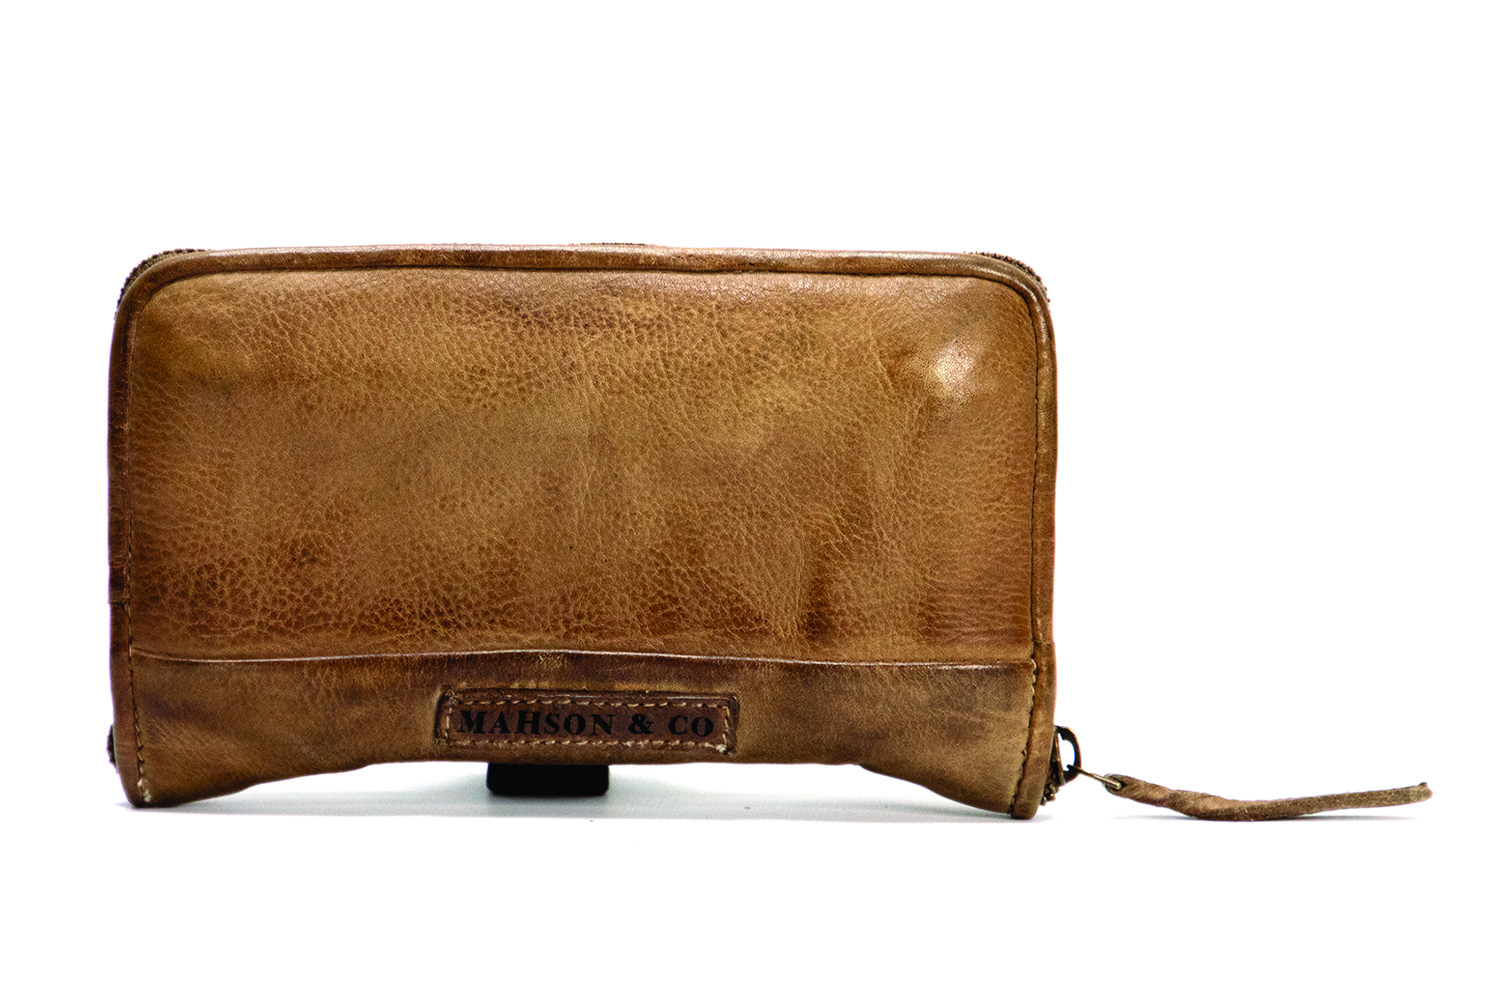 Vintage, retro and boho inspired genuine leather wallet